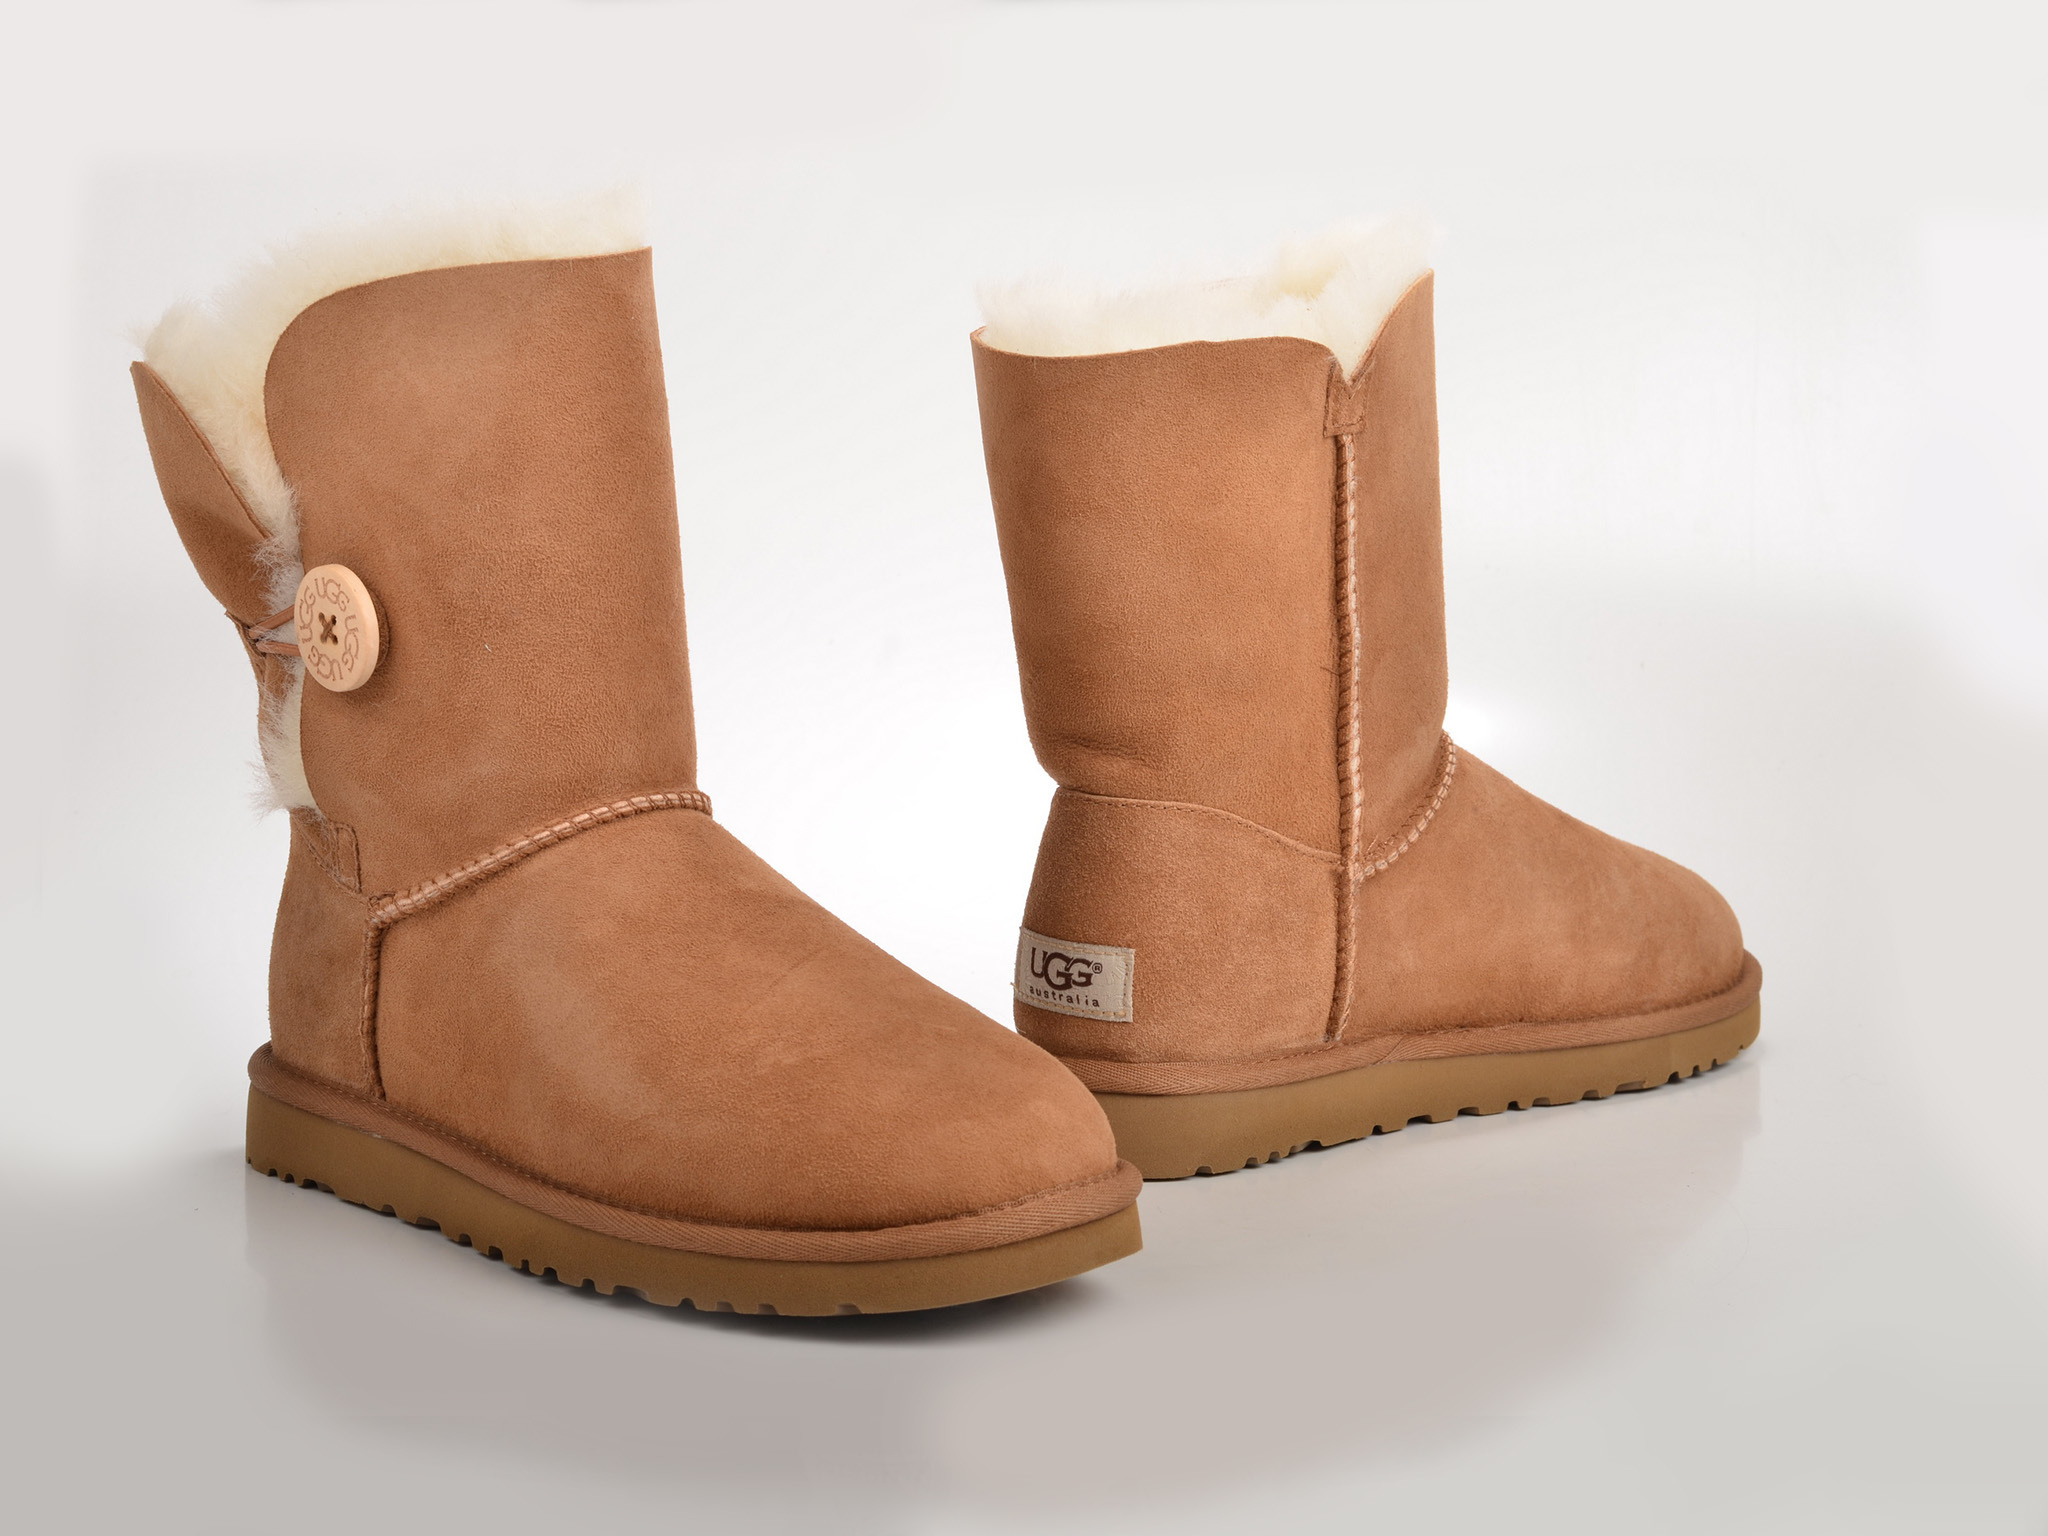 where can you buy ugg boots